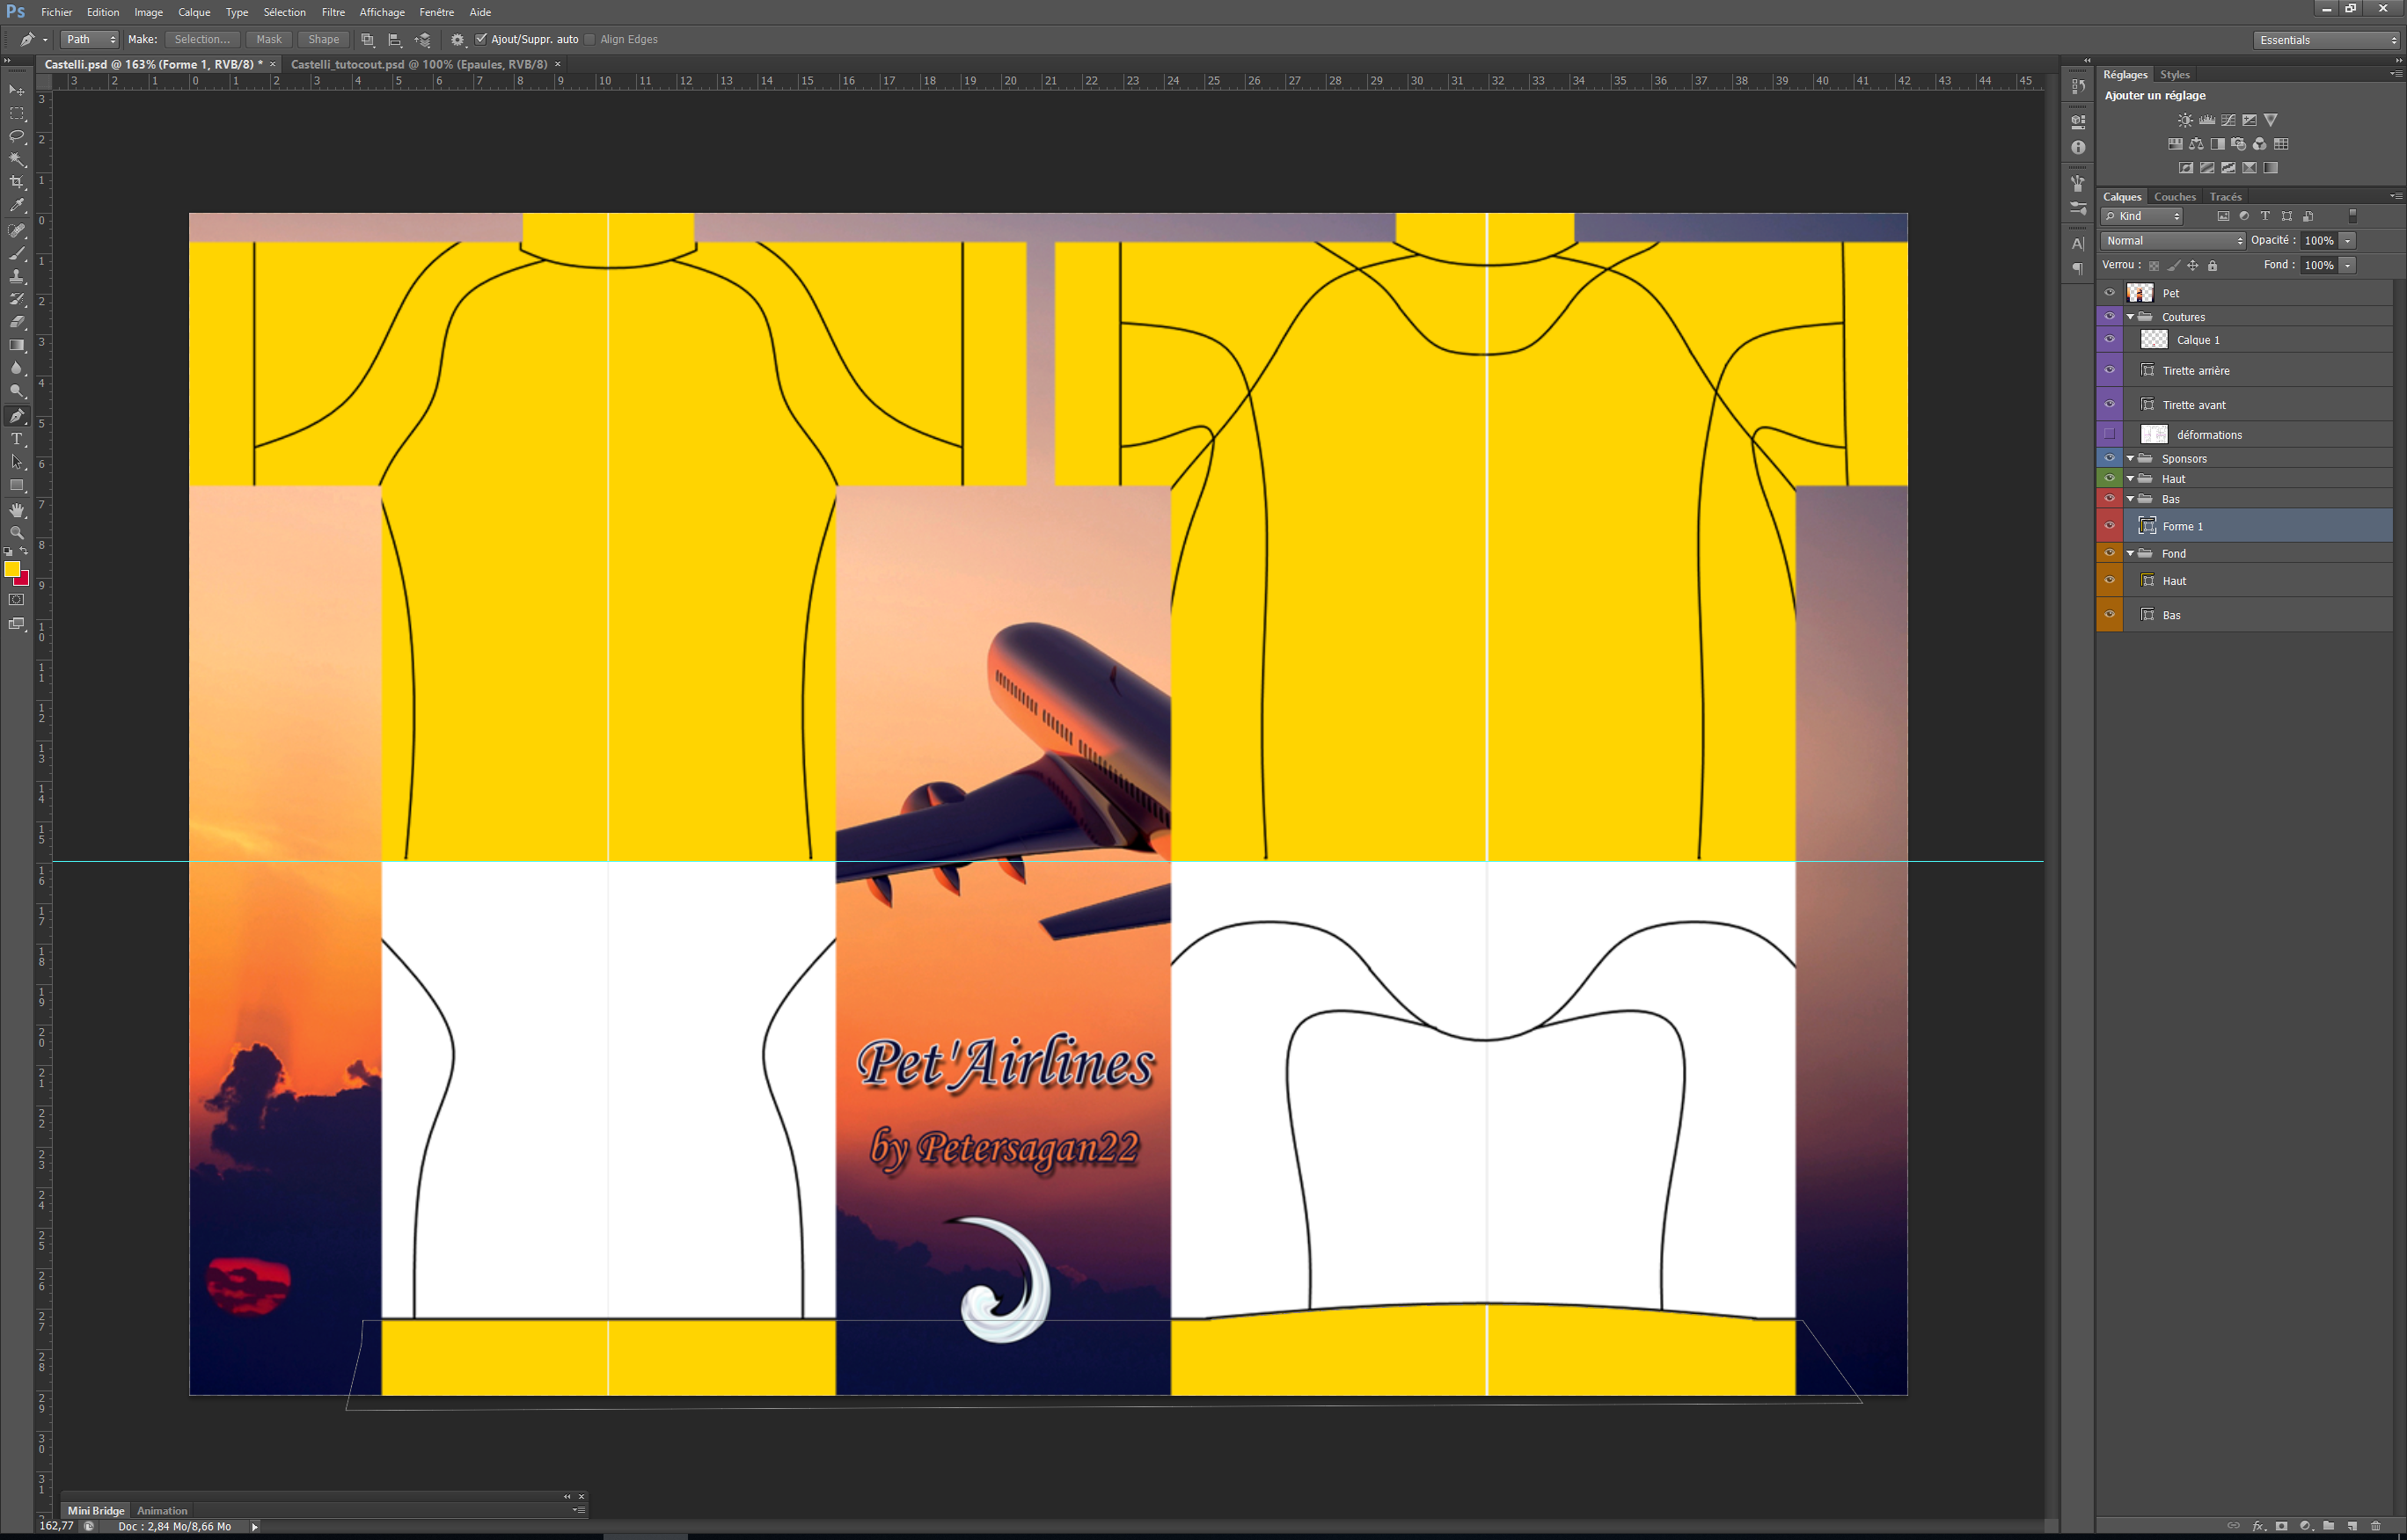 Faire un maillot sur Photoshop 190227092012789913